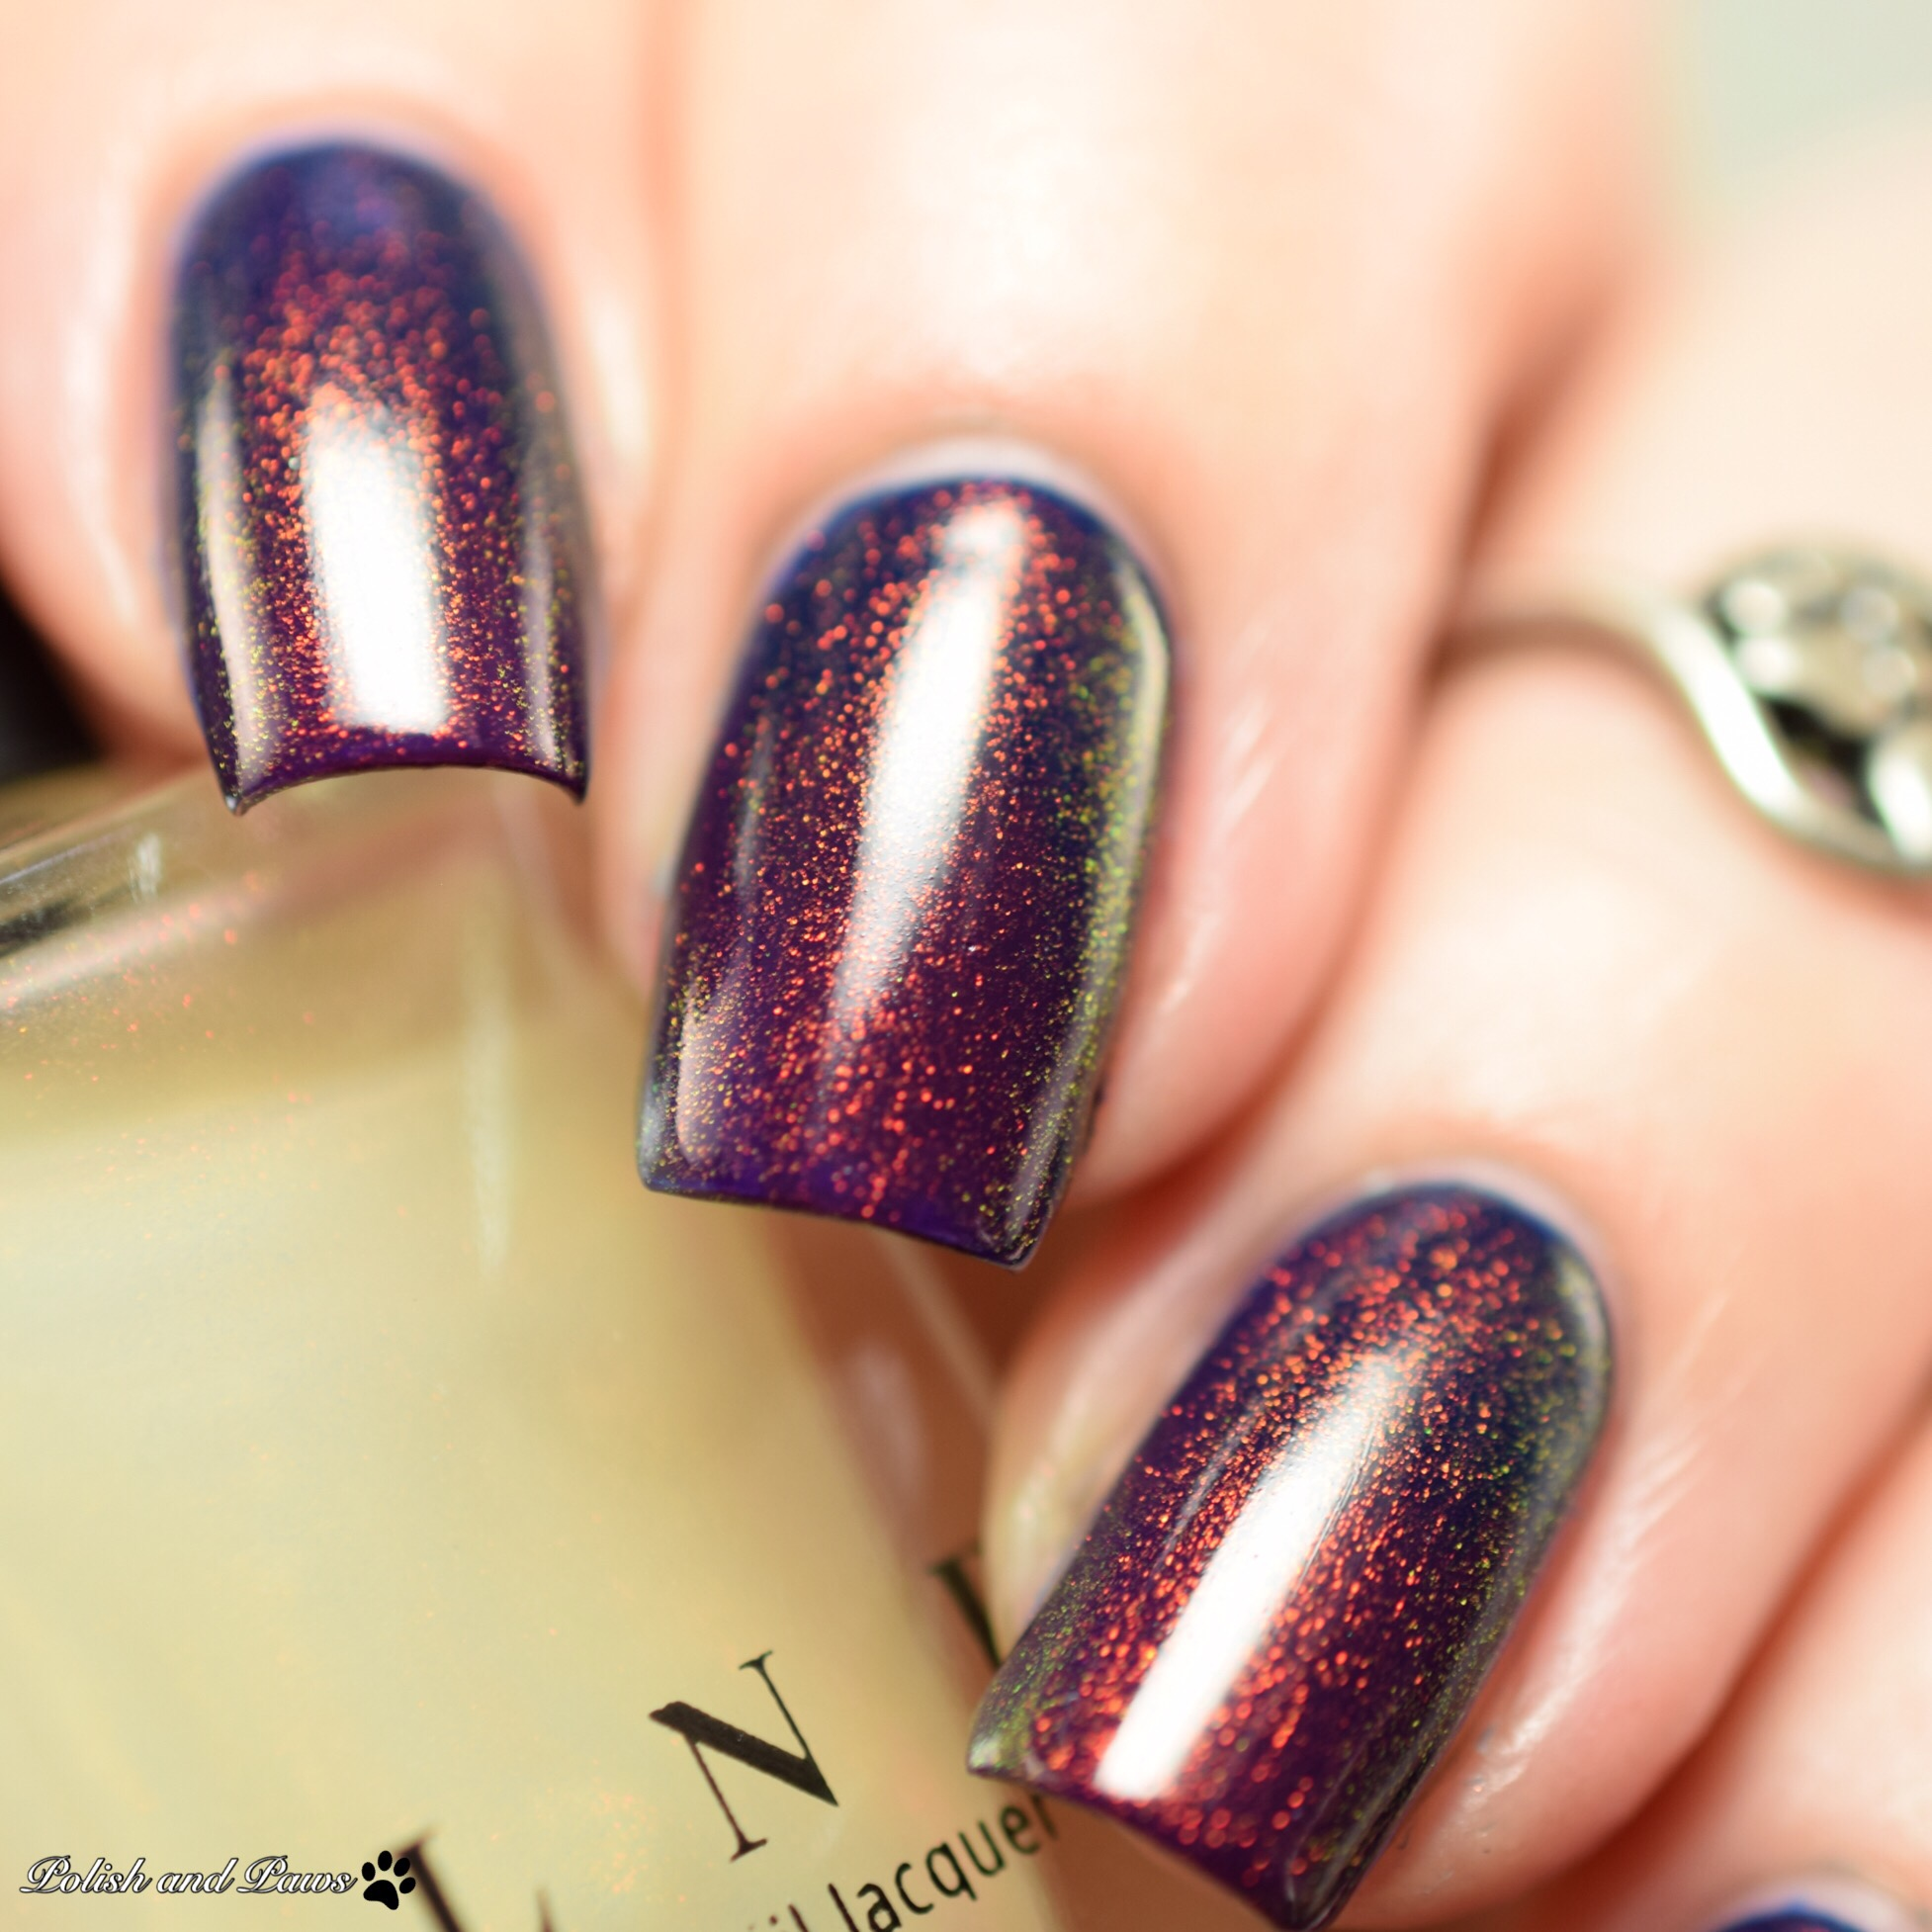 ILNP The Magician layered over Zoya Lael and Zoya Ryan gradient